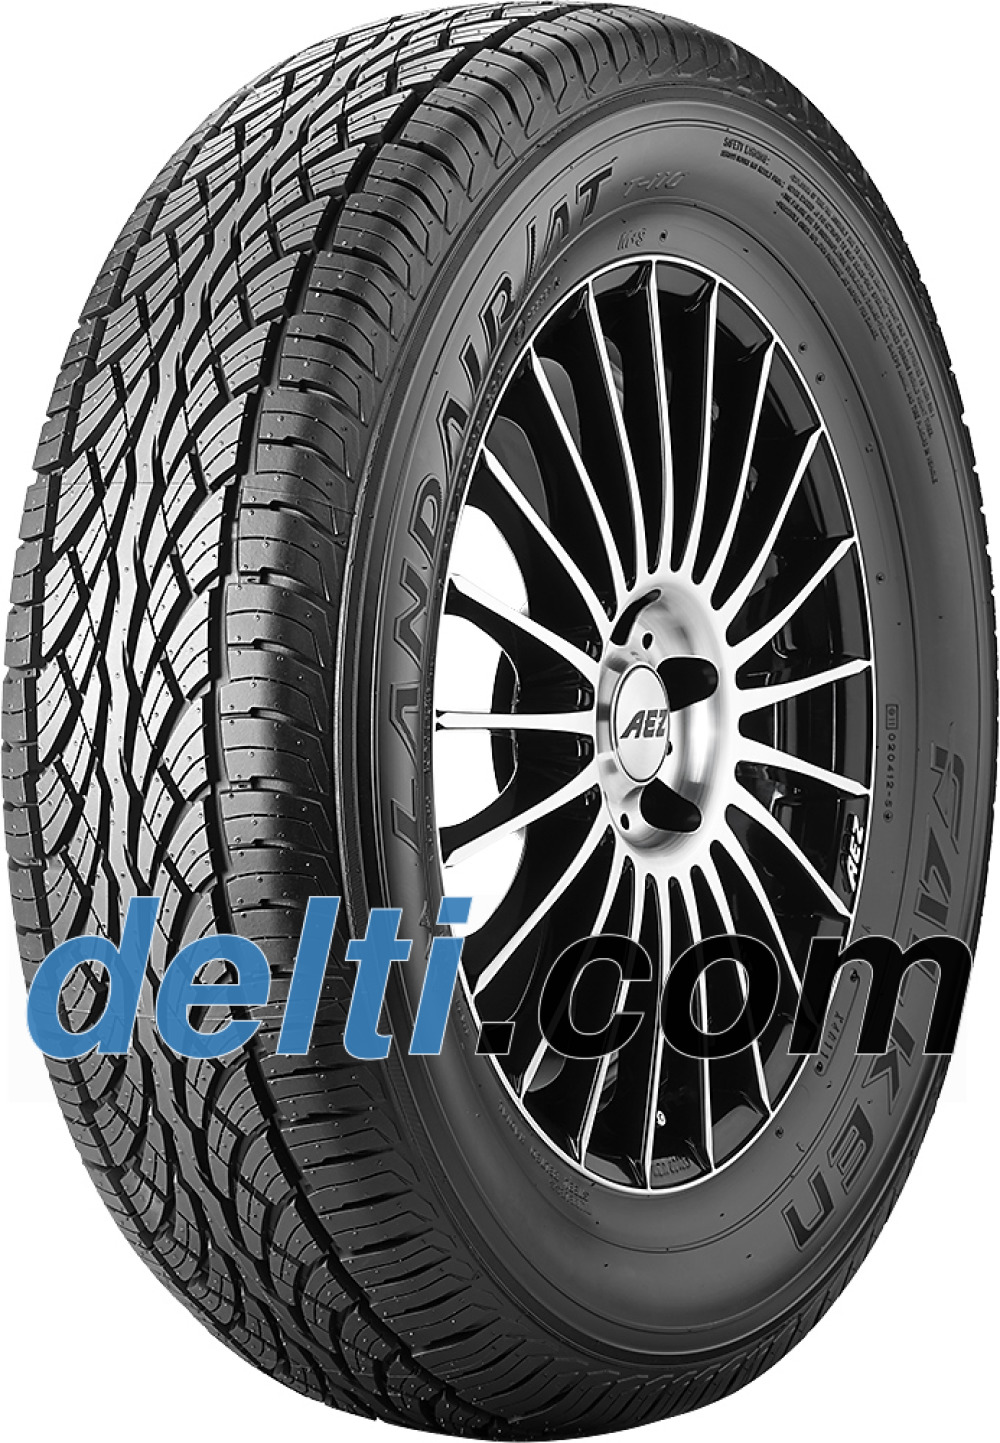 Falken Landair/AT T-110 ( 215/80 R16 103S )